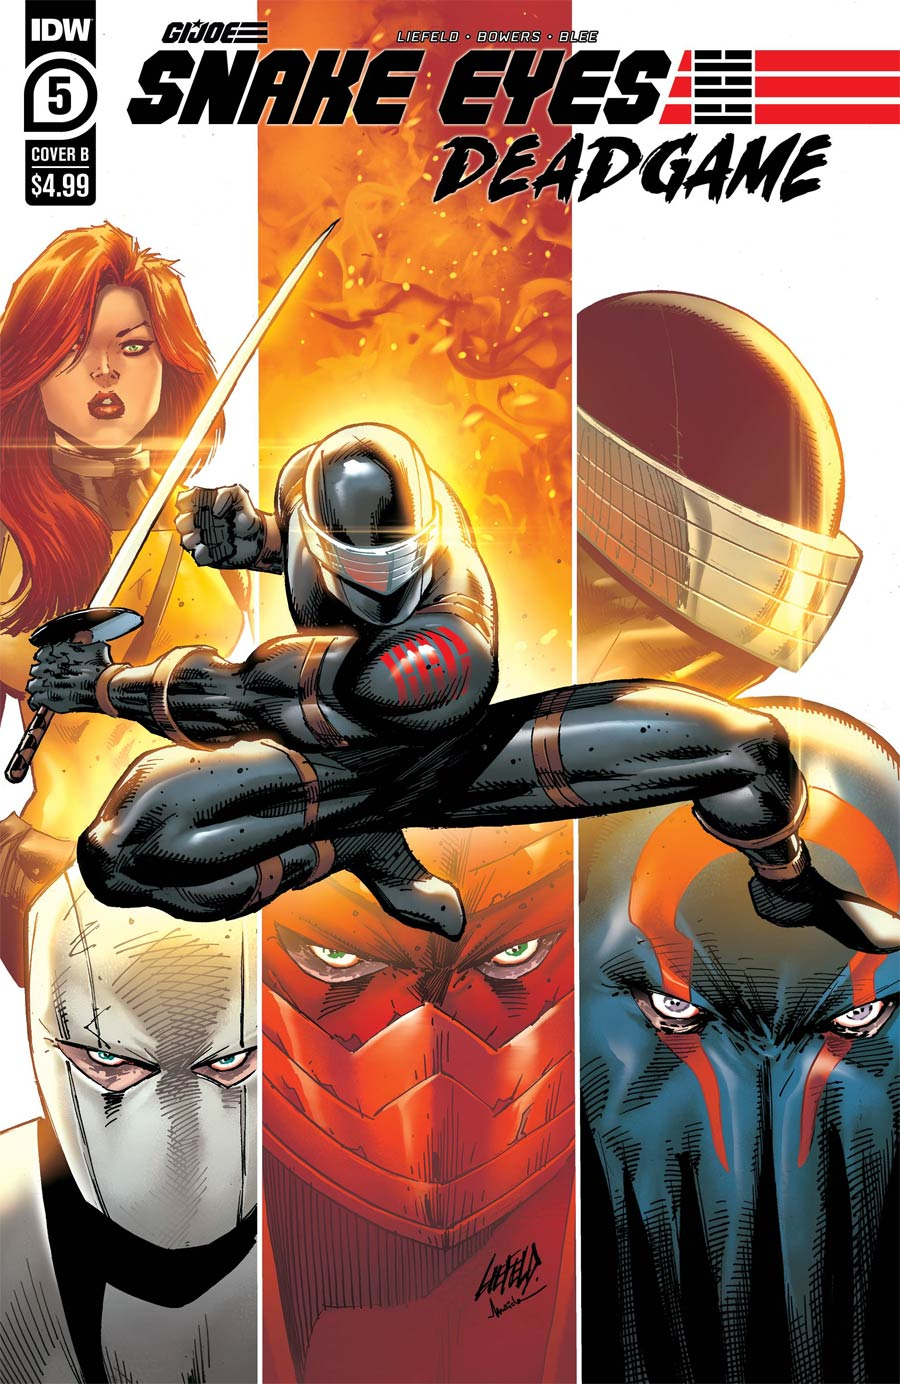 Snake Eyes Deadgame #5 Cover B Variant Rob Liefeld Cover